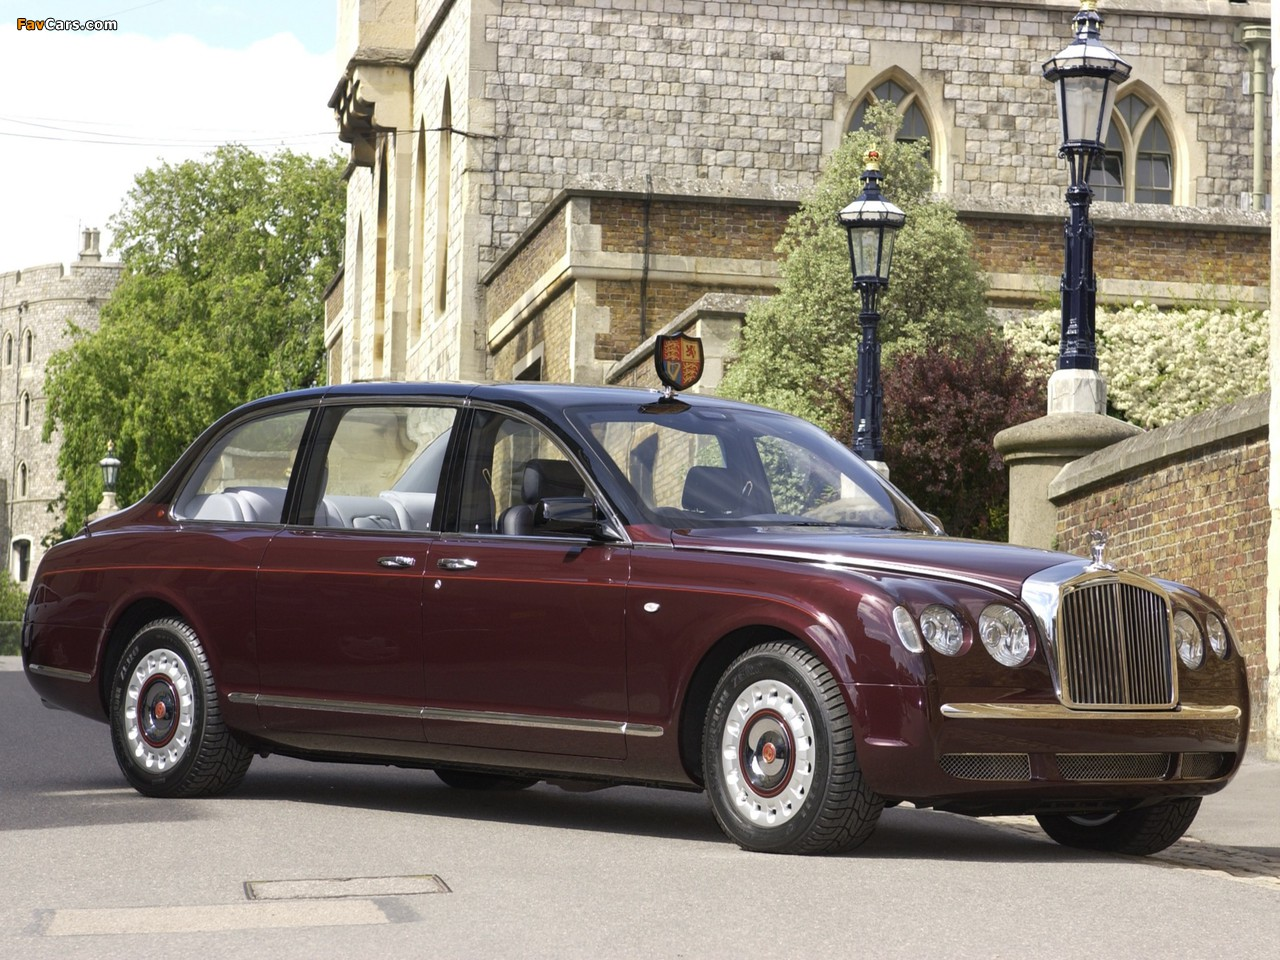 Bentley State Limousine 2002 pictures (1280 x 960)